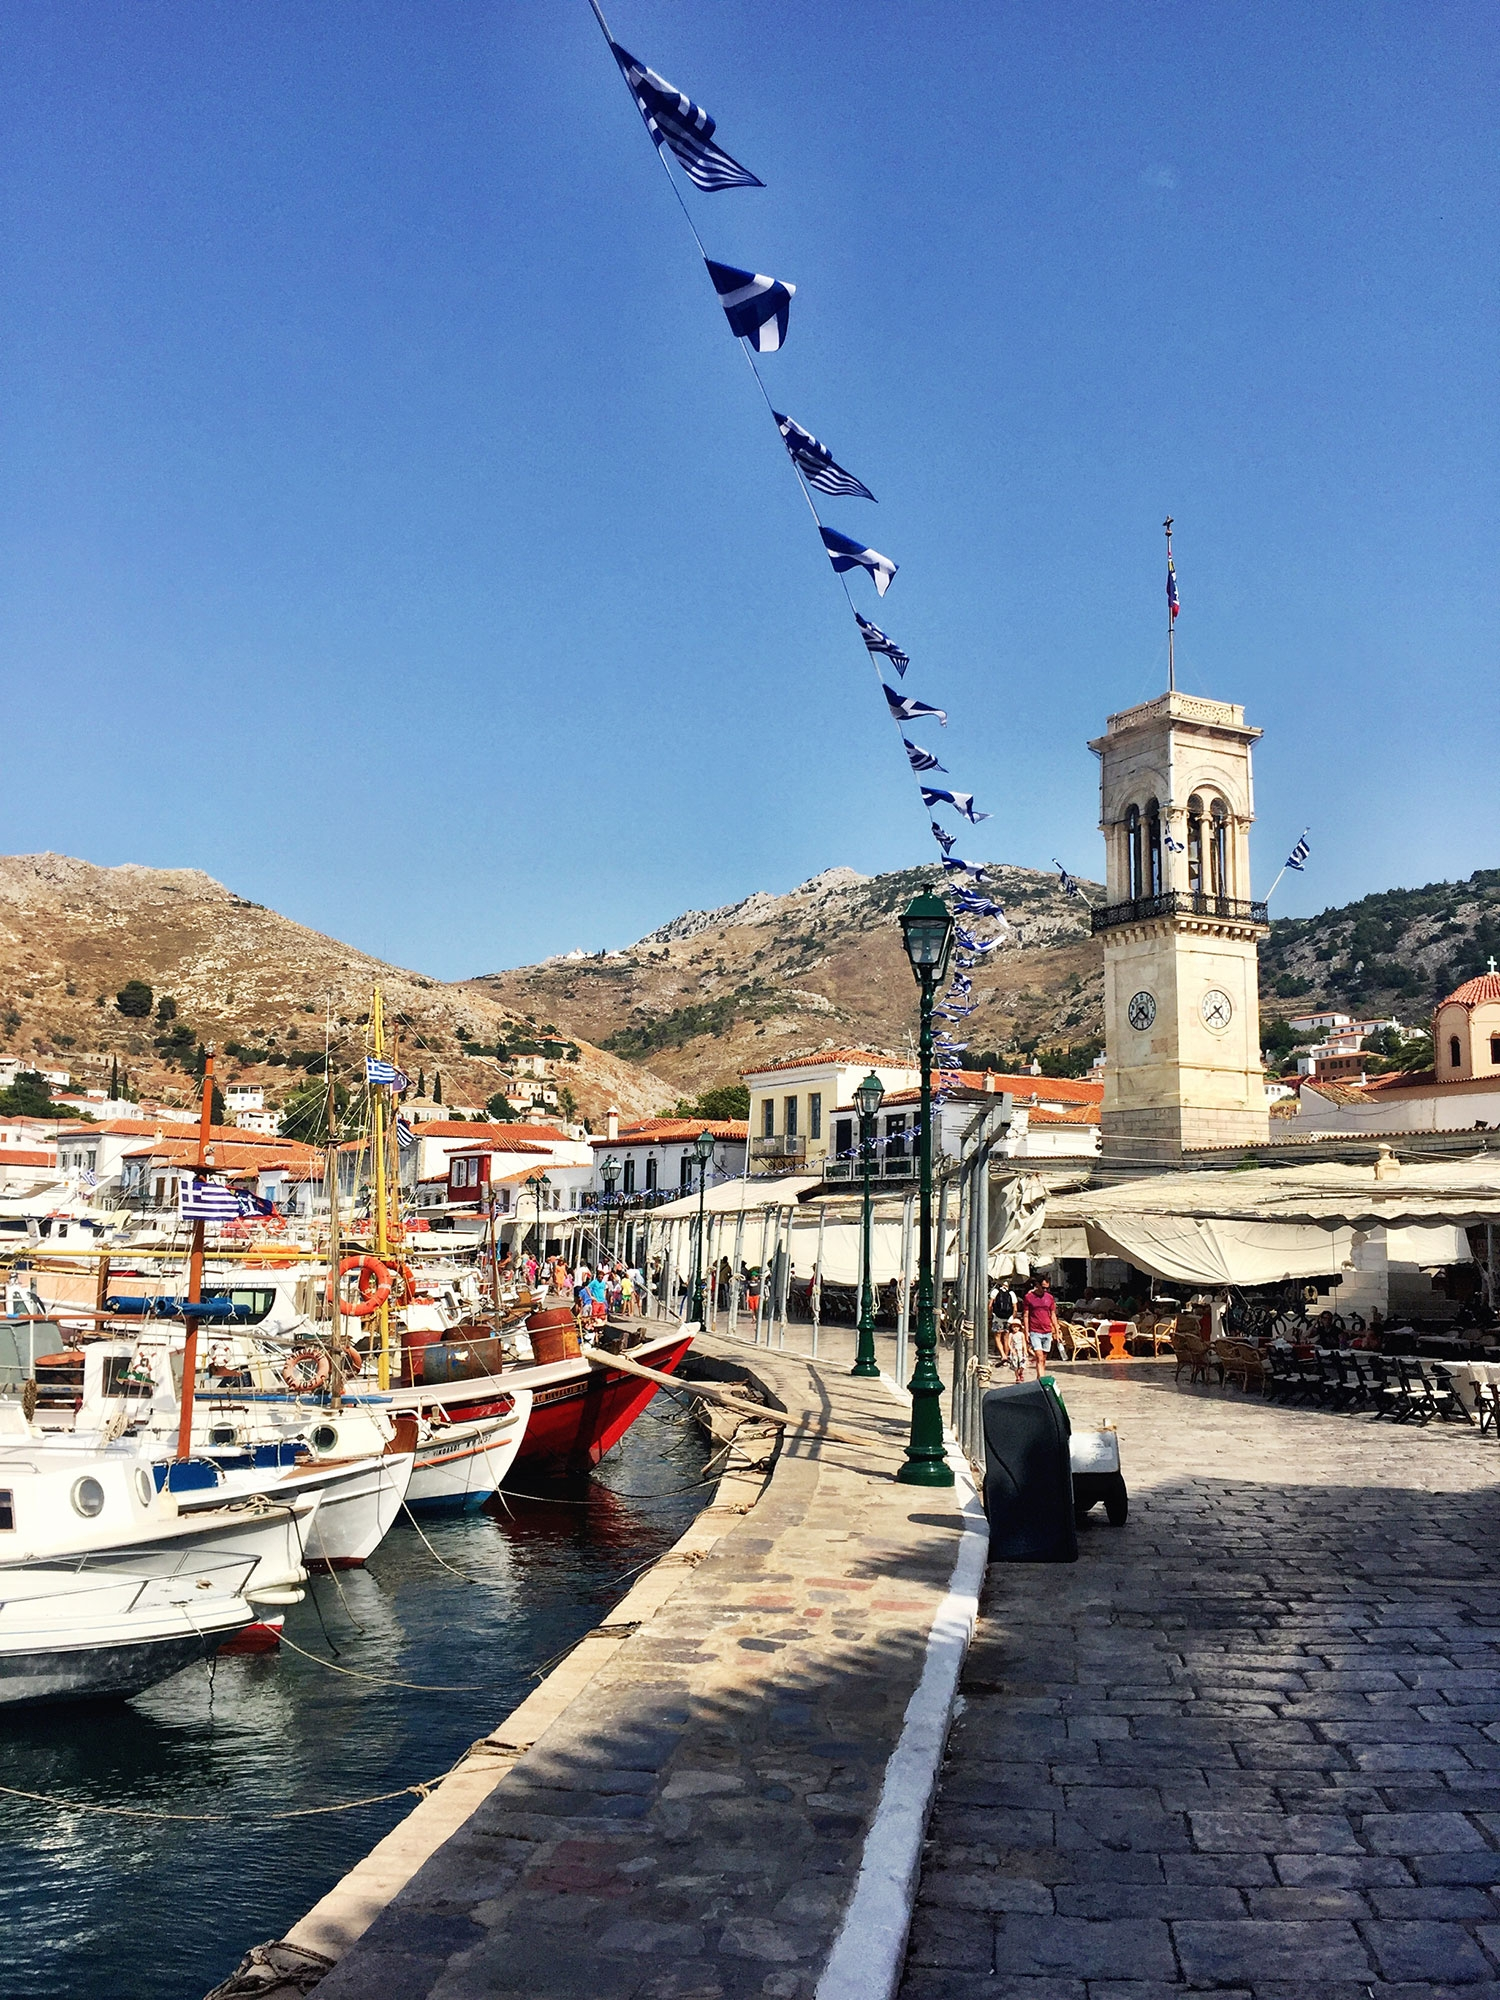 Docked boats, Greek flags and white buildings line the port